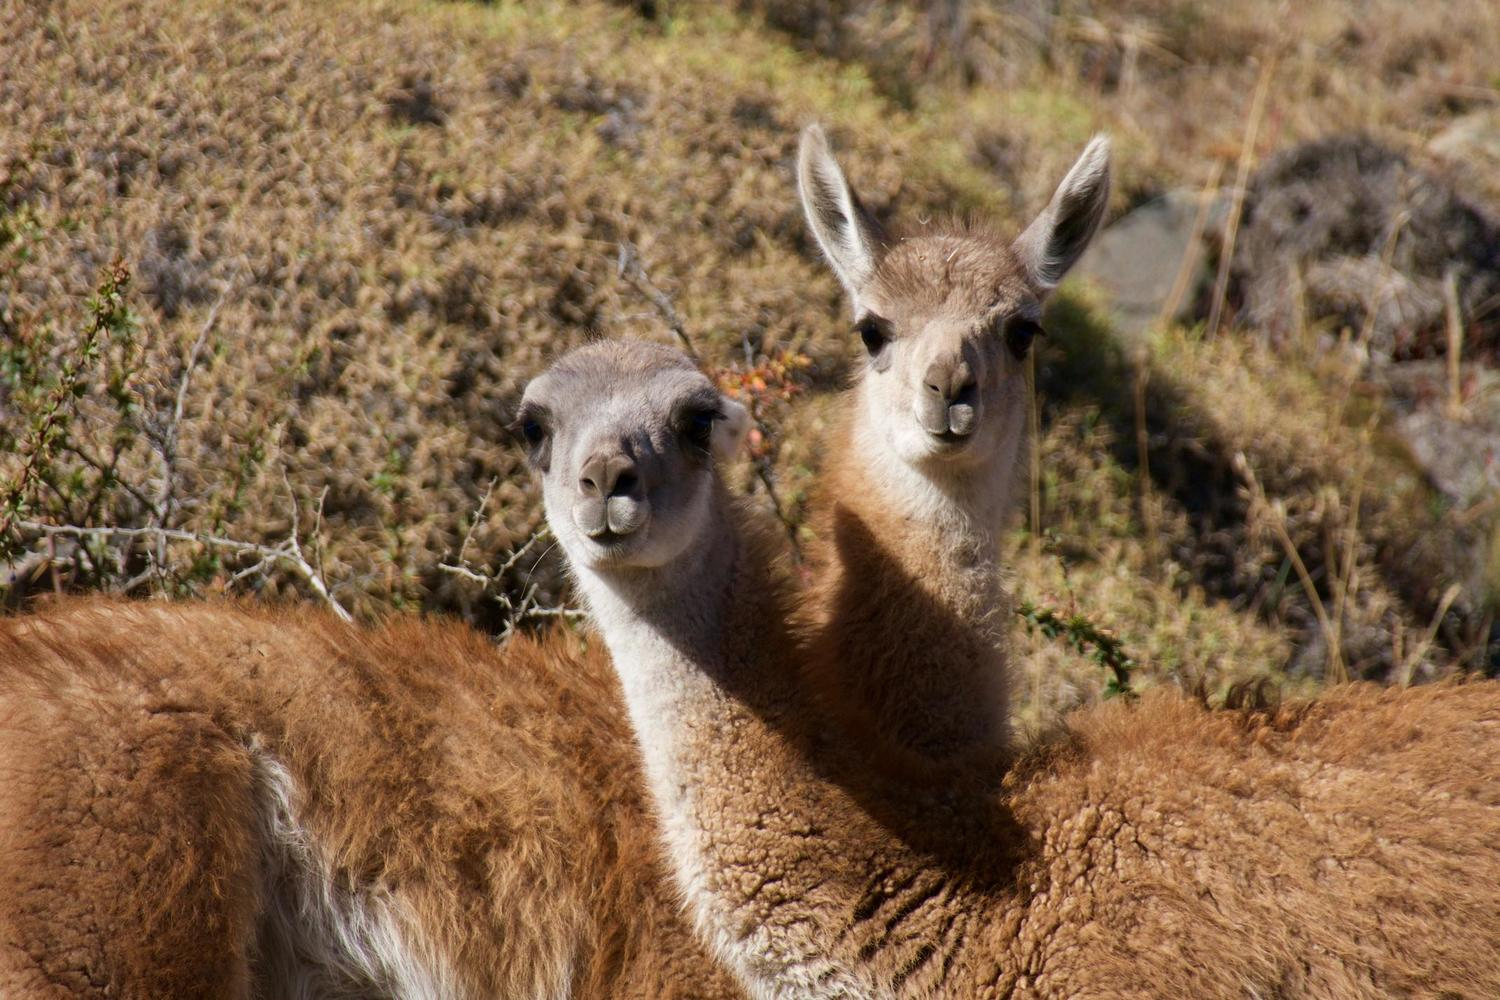 Guanacos in Parque Patagonia on one of our recent visits